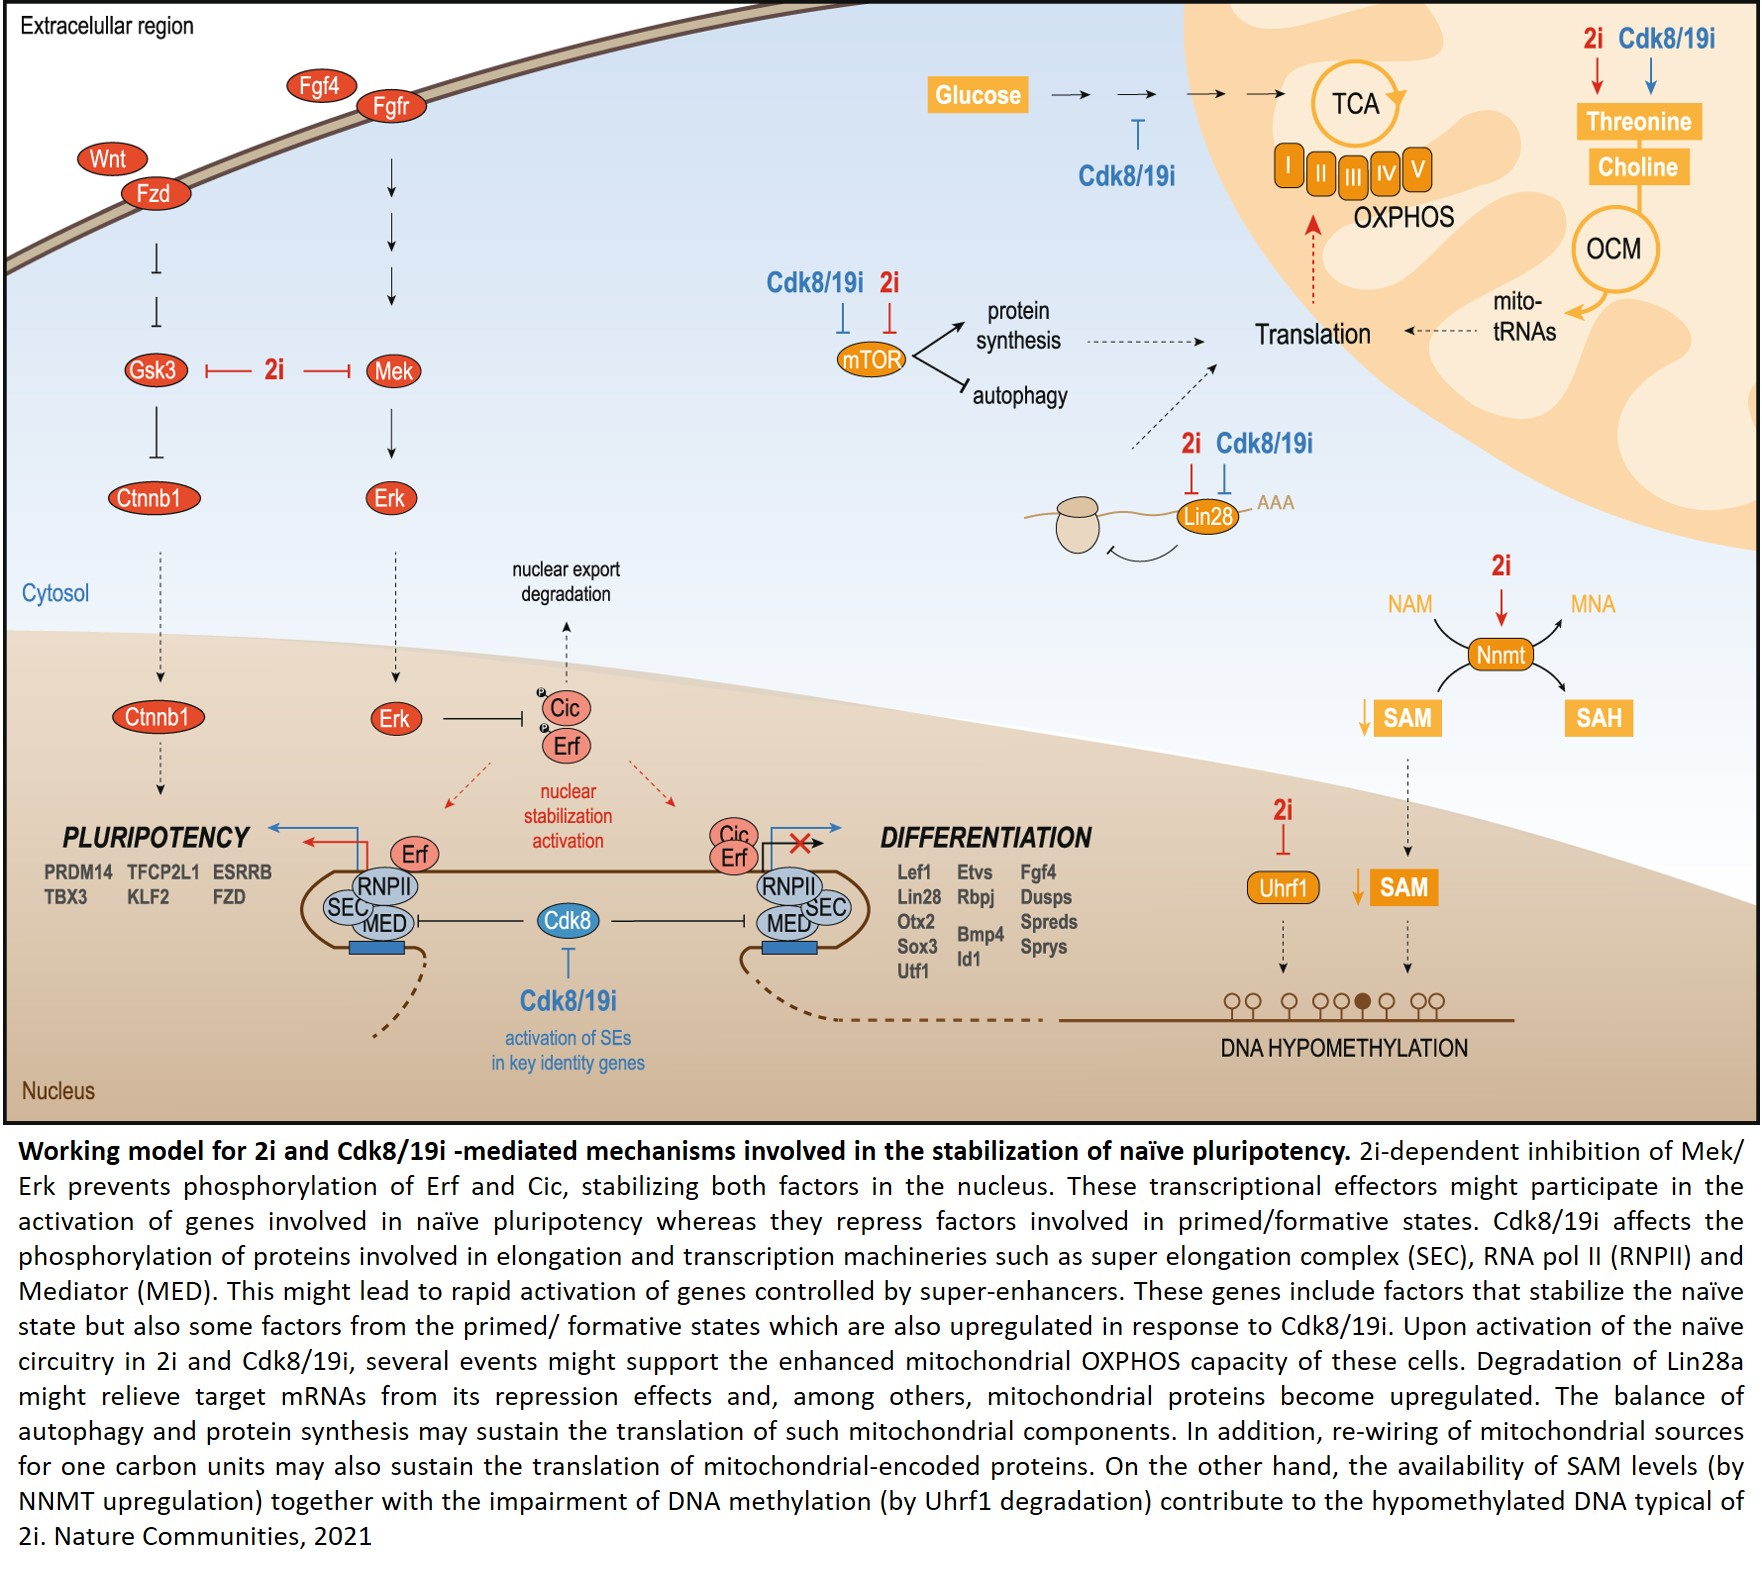 Dissection of two routes to naïve pluripotency using different kinase inhibitors